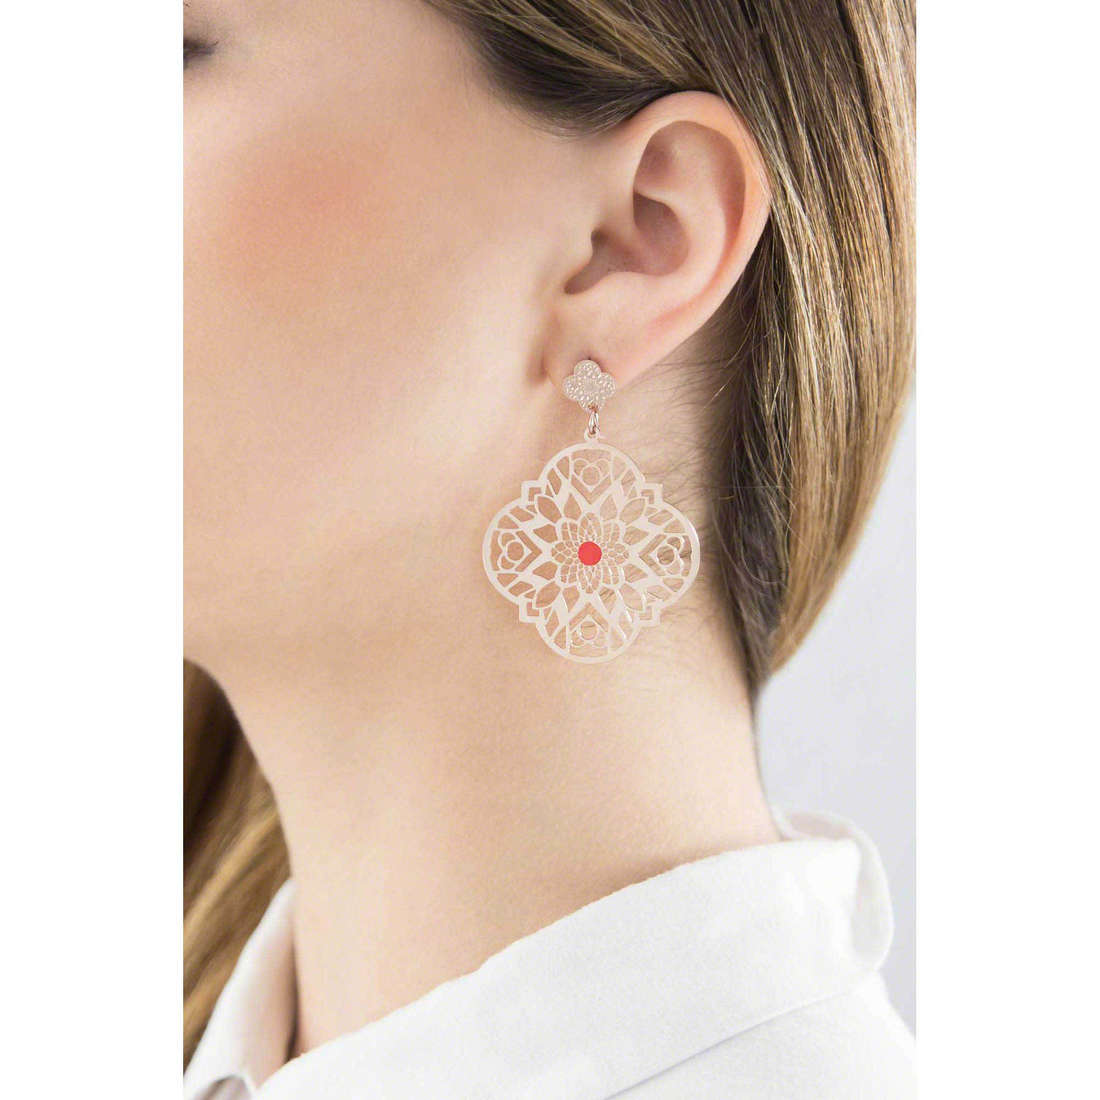 Marlù boucles d'oreille Woman Chic femme 2OR0025R indosso